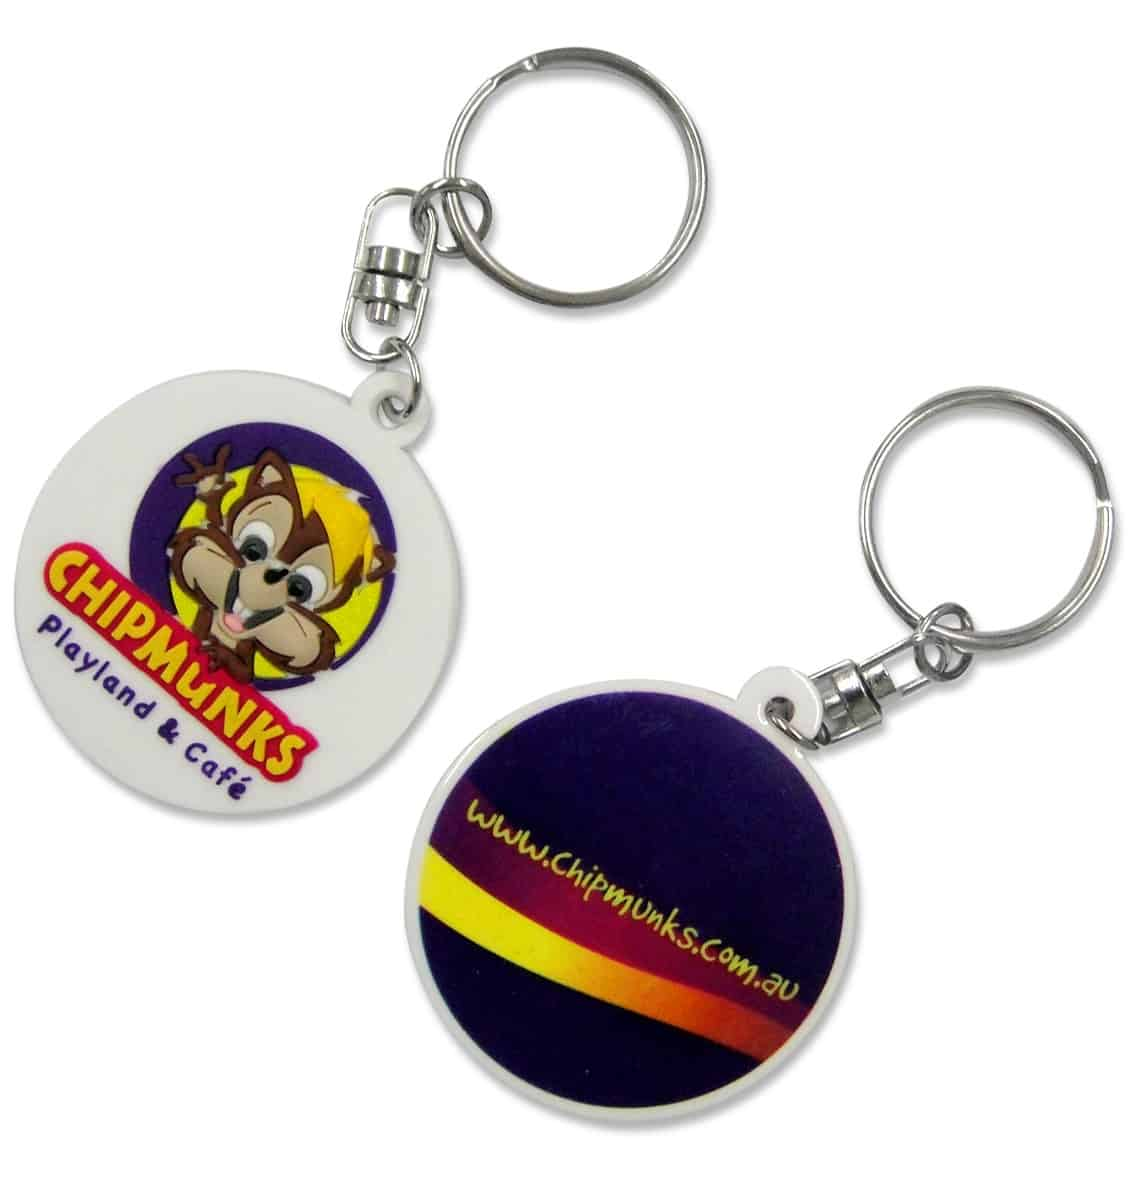 Circular custom rubber keychains for an indoor childrens play centre. This design has an 8 colour 2D logo on the front and a gradient print on the back.